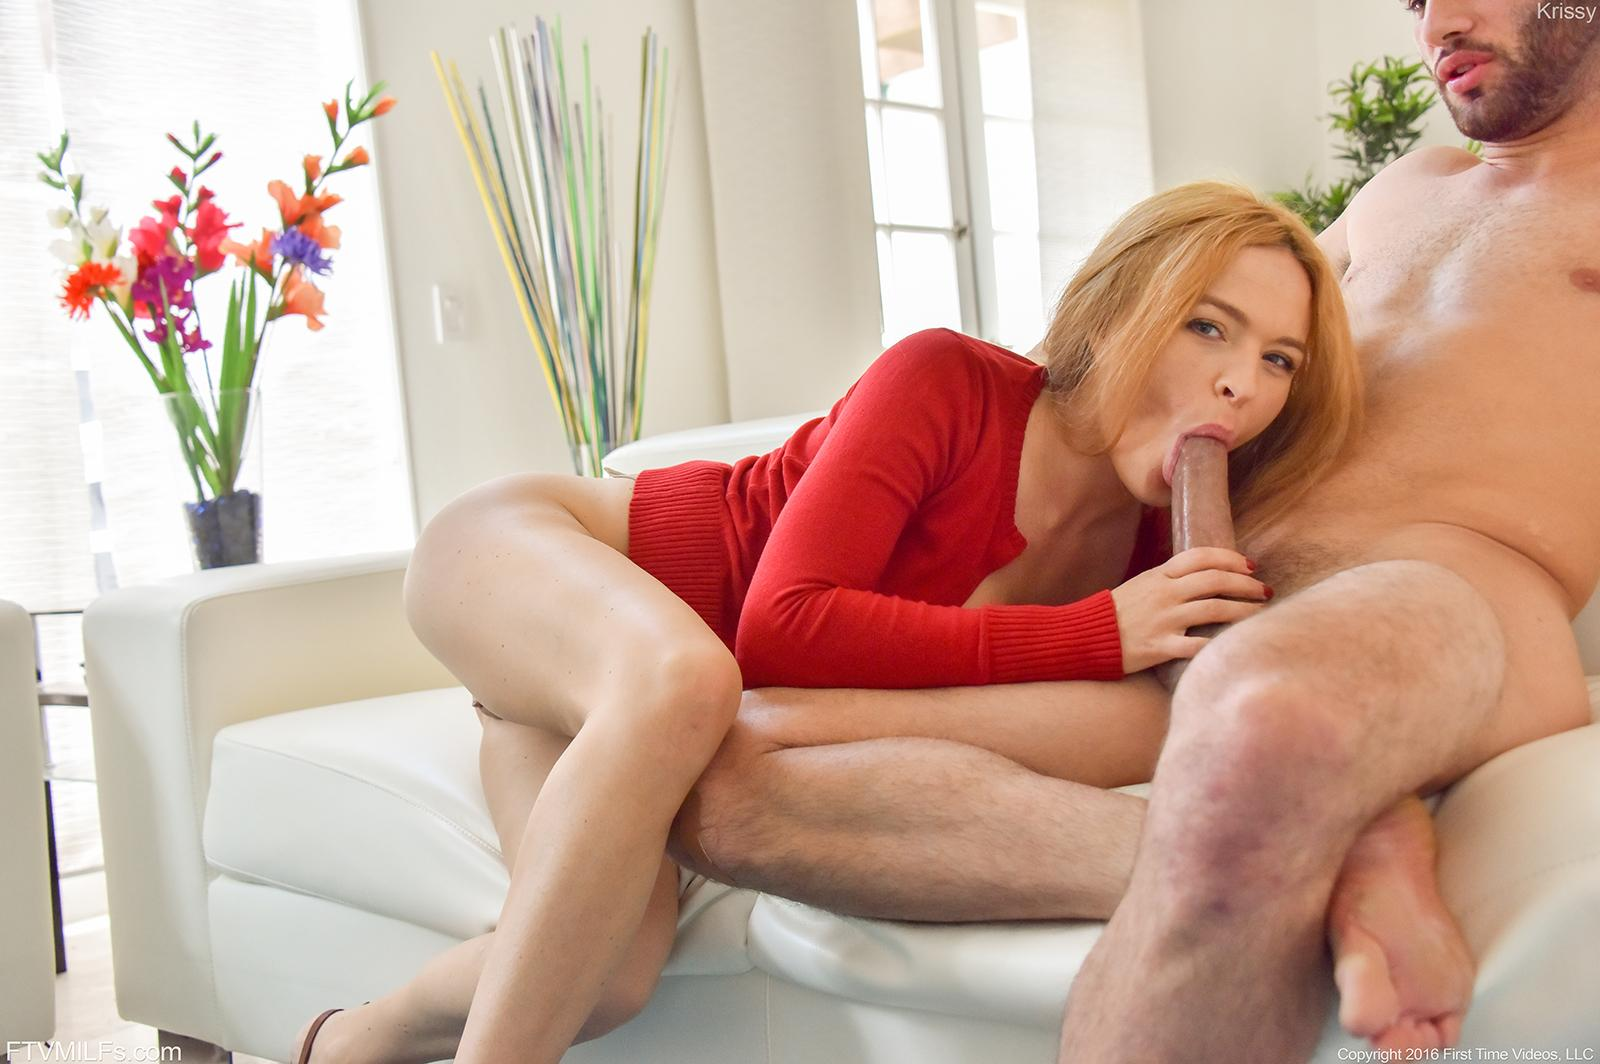 redhead hottie krissy lynn gets boned hard and deep at